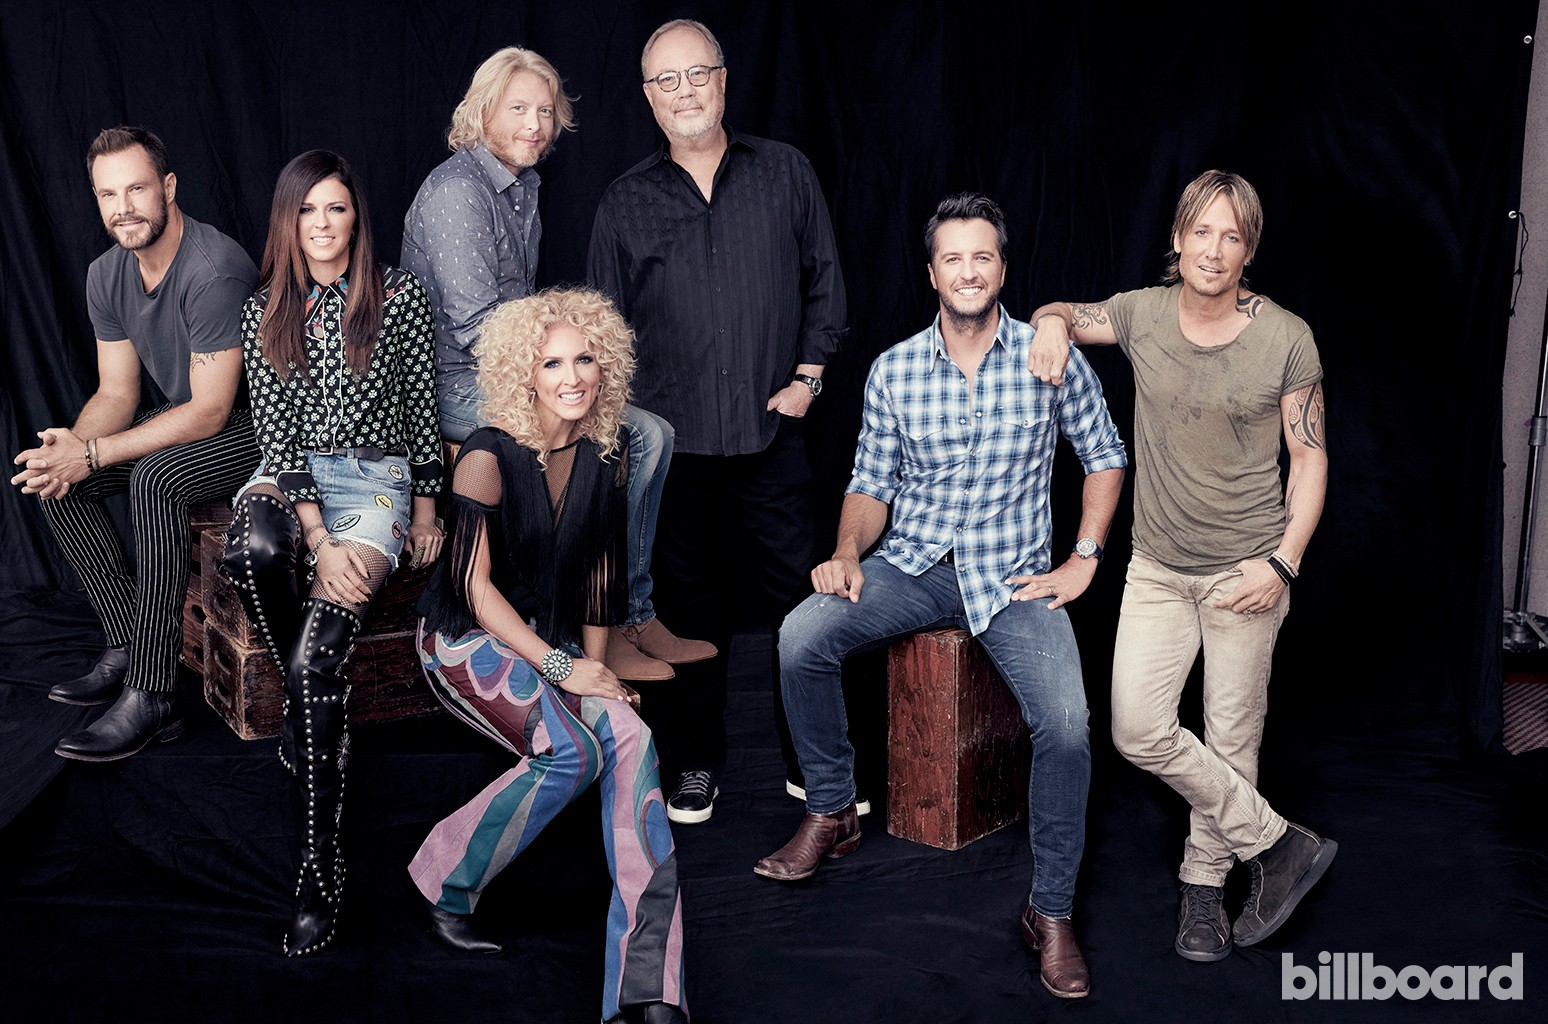 From left: Jimi Westbrook, Karen Fairchild, Phillip Sweet and Kimberly Schlapman of Little Big Town, Dungan, Bryan and Urban photographed together by Austin Hargrave on June 12 at Nissan Stadium in Nashville.